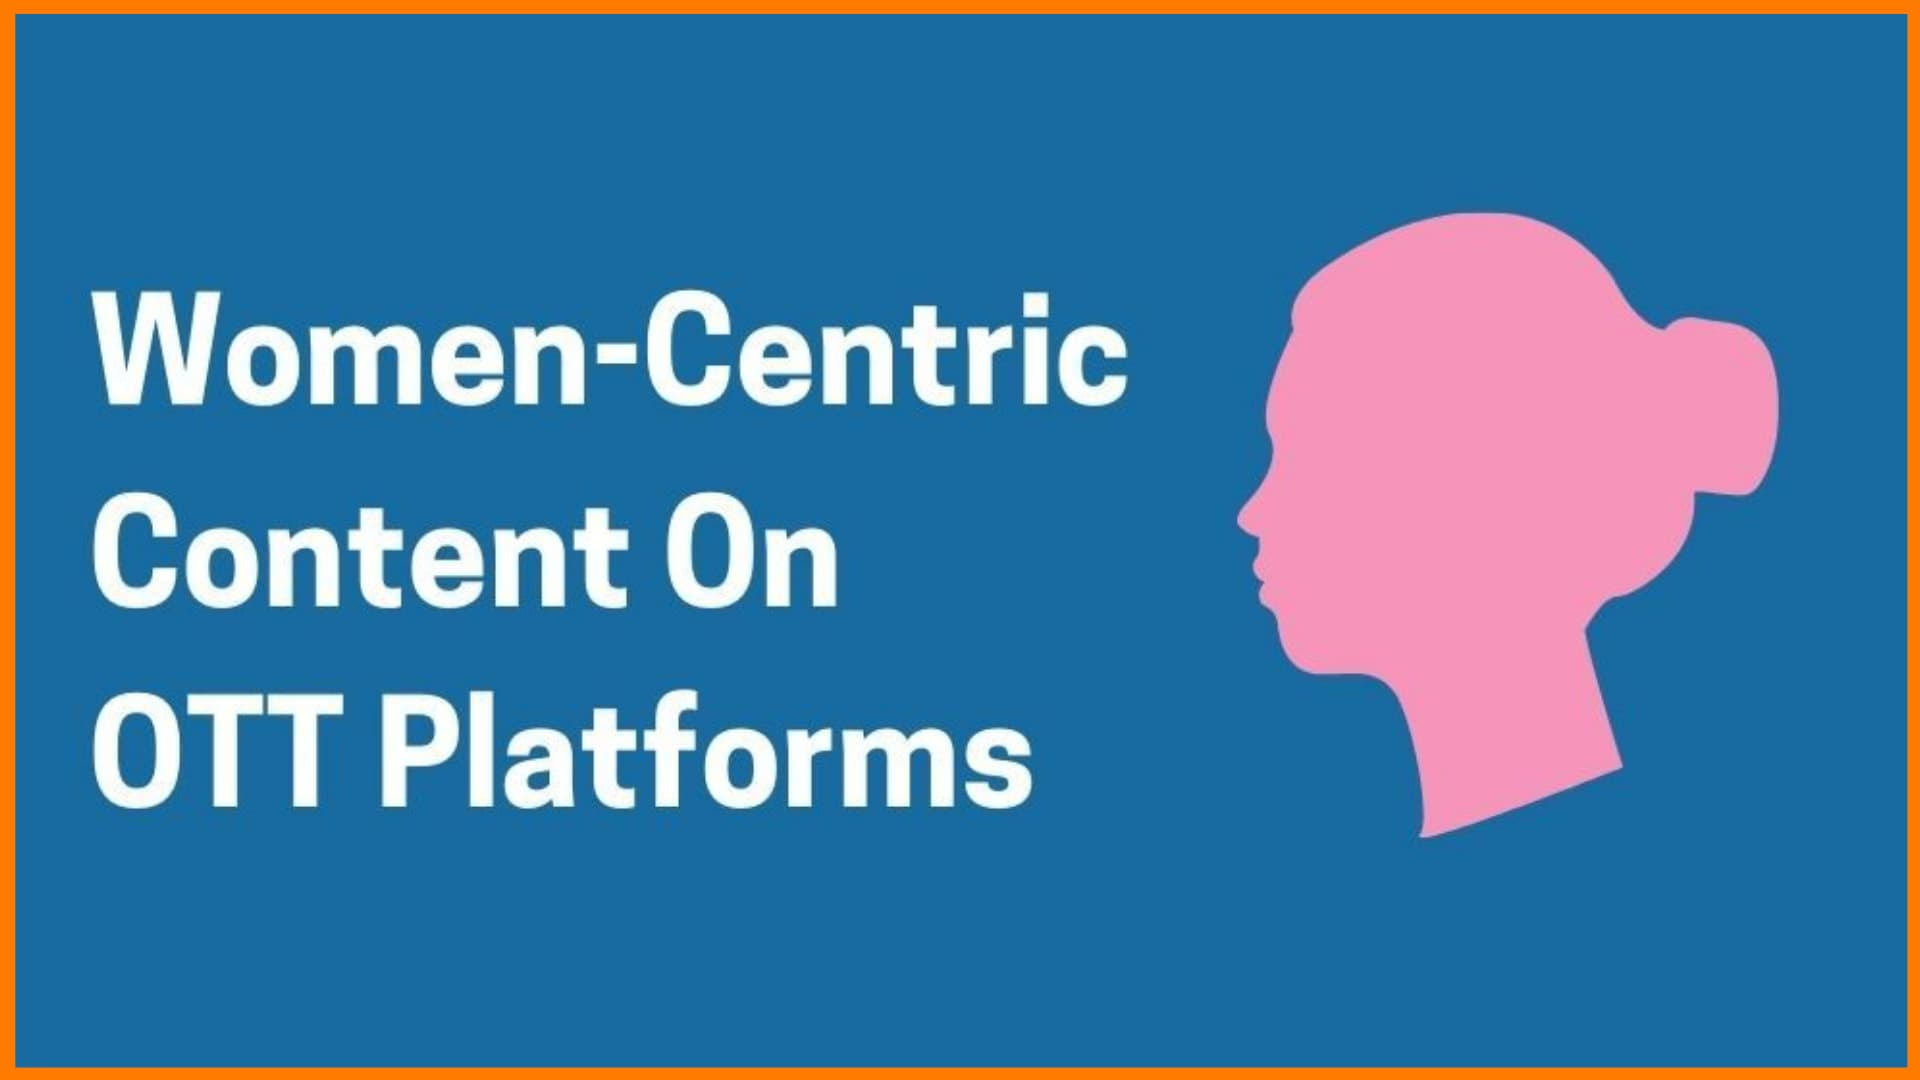 Why Streaming Platforms Are Focusing on Women-Centric Content?